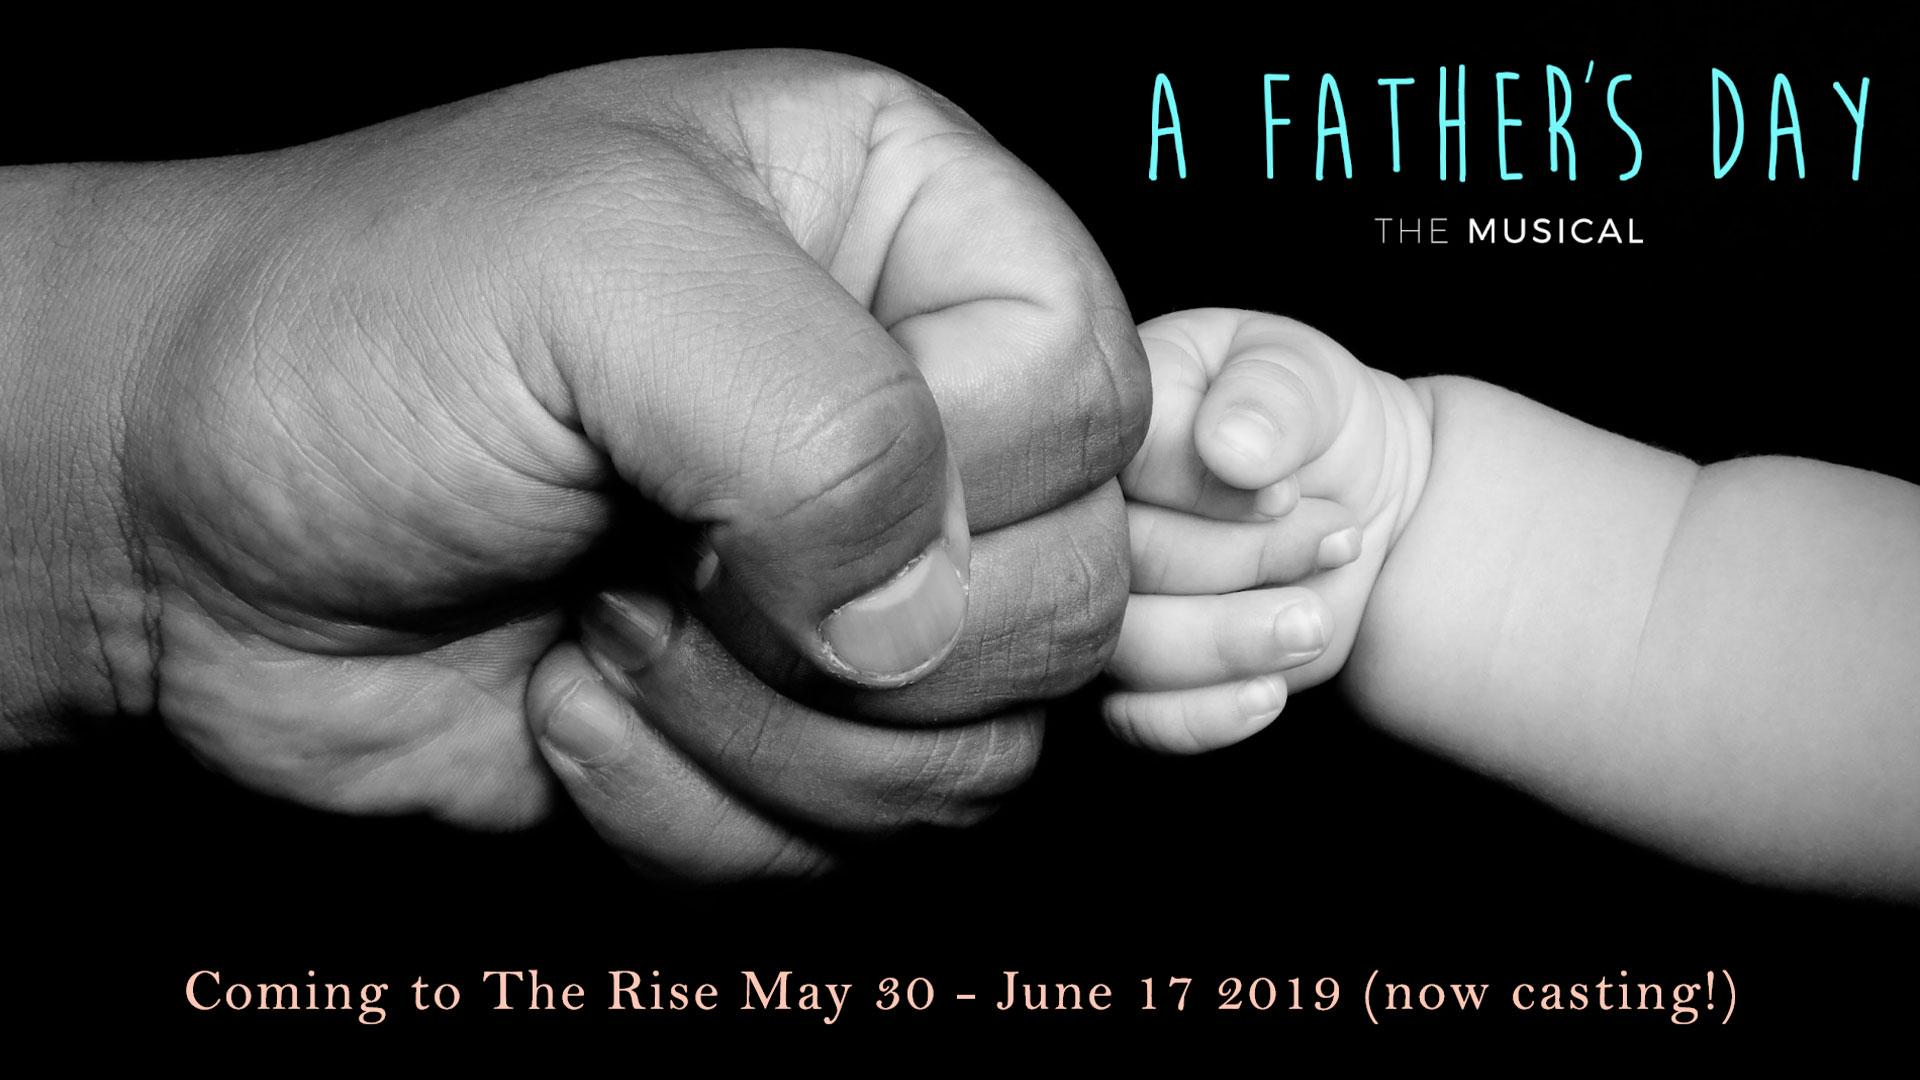 Now Casting For A Father's Day 2019